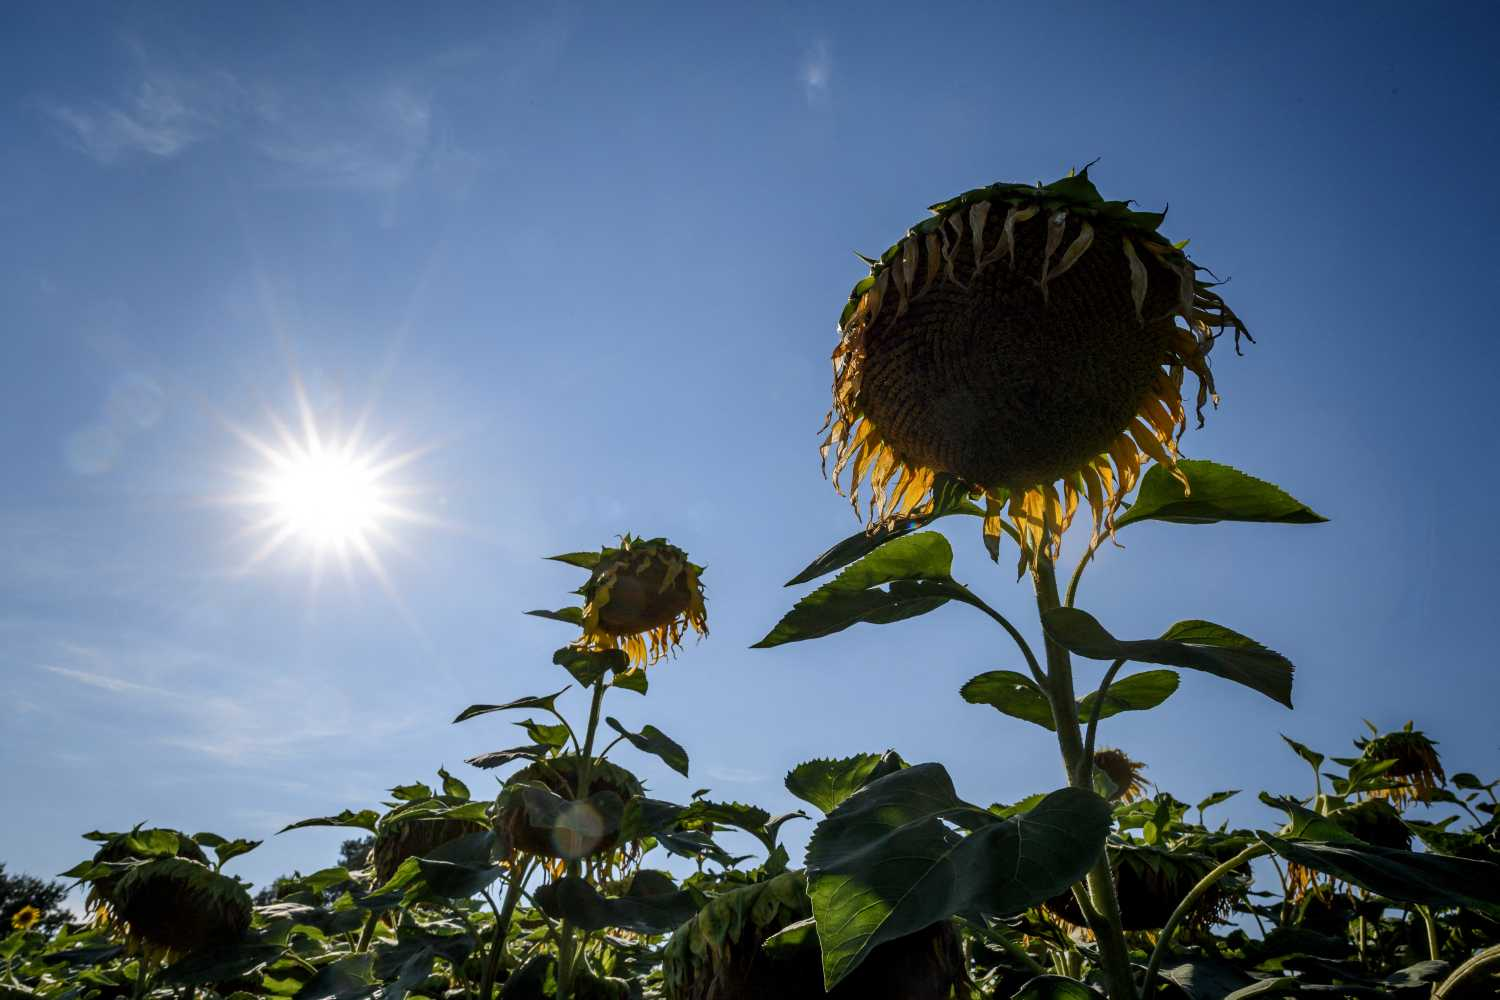 18 degrees and sunshine: Warm weather predicted for Switzerland this weekend